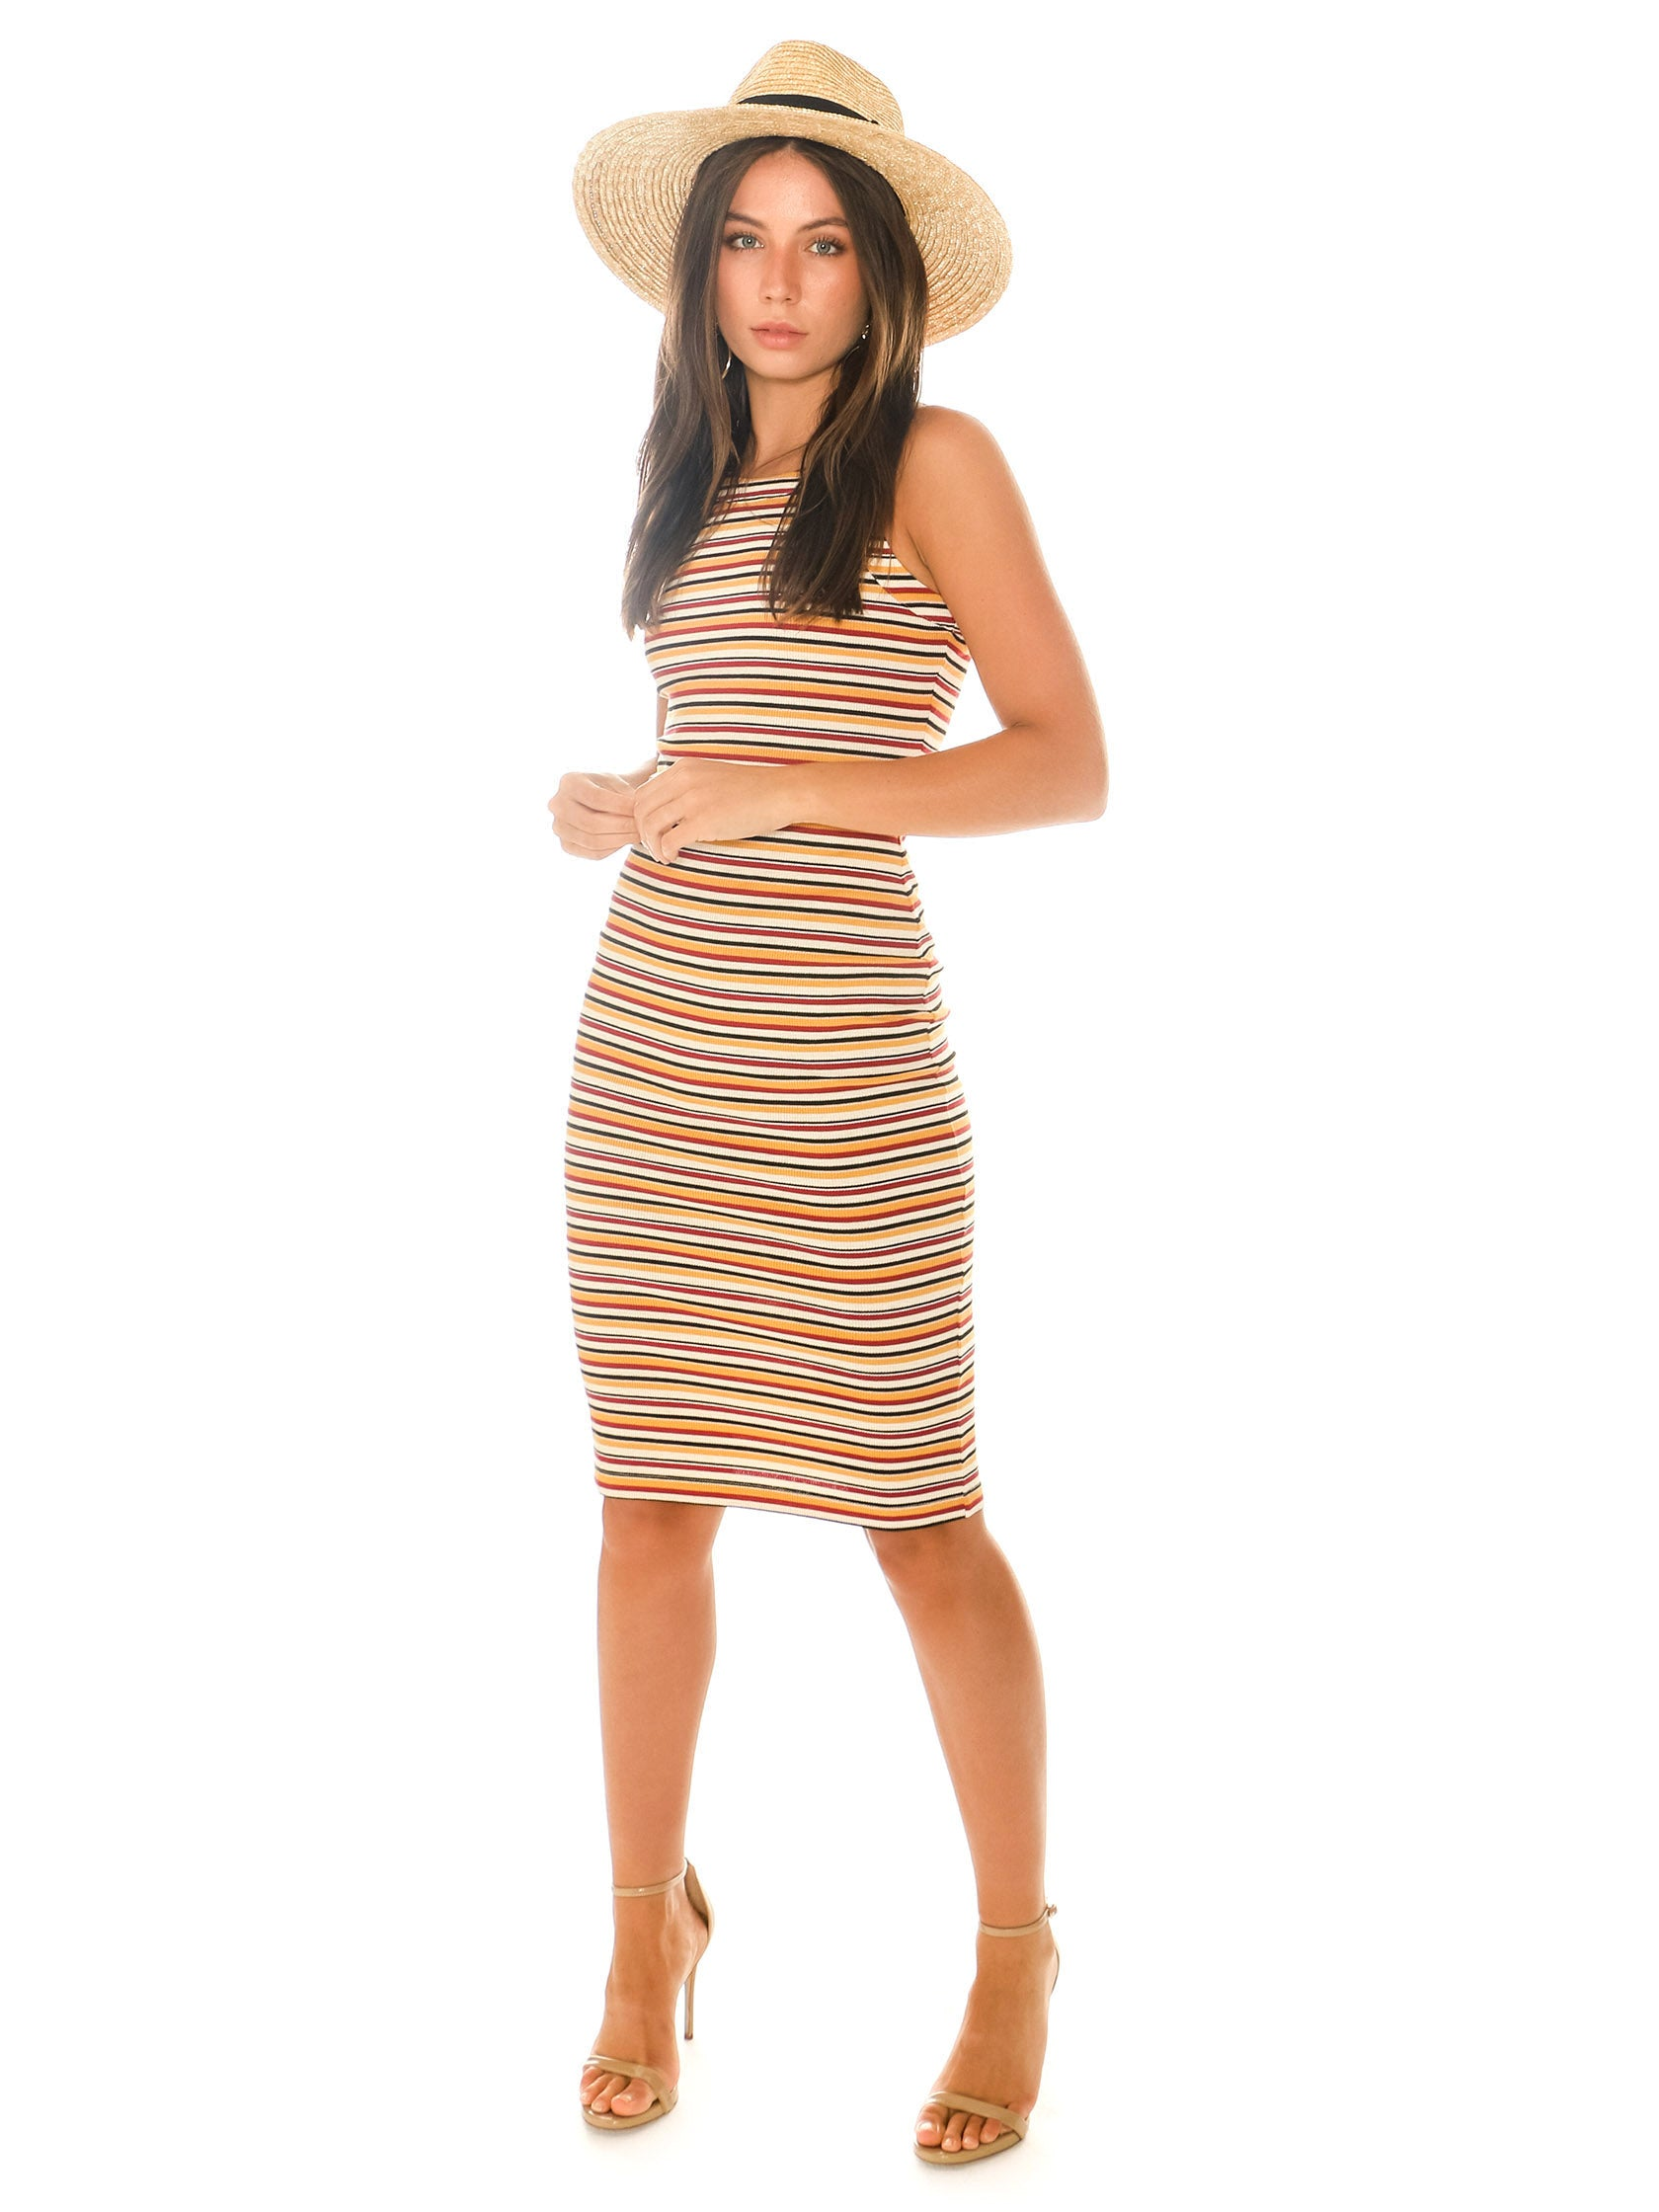 Girl outfit in a dress rental from 1.STATE called Stripe Dialogue Bodycon Knit Dress